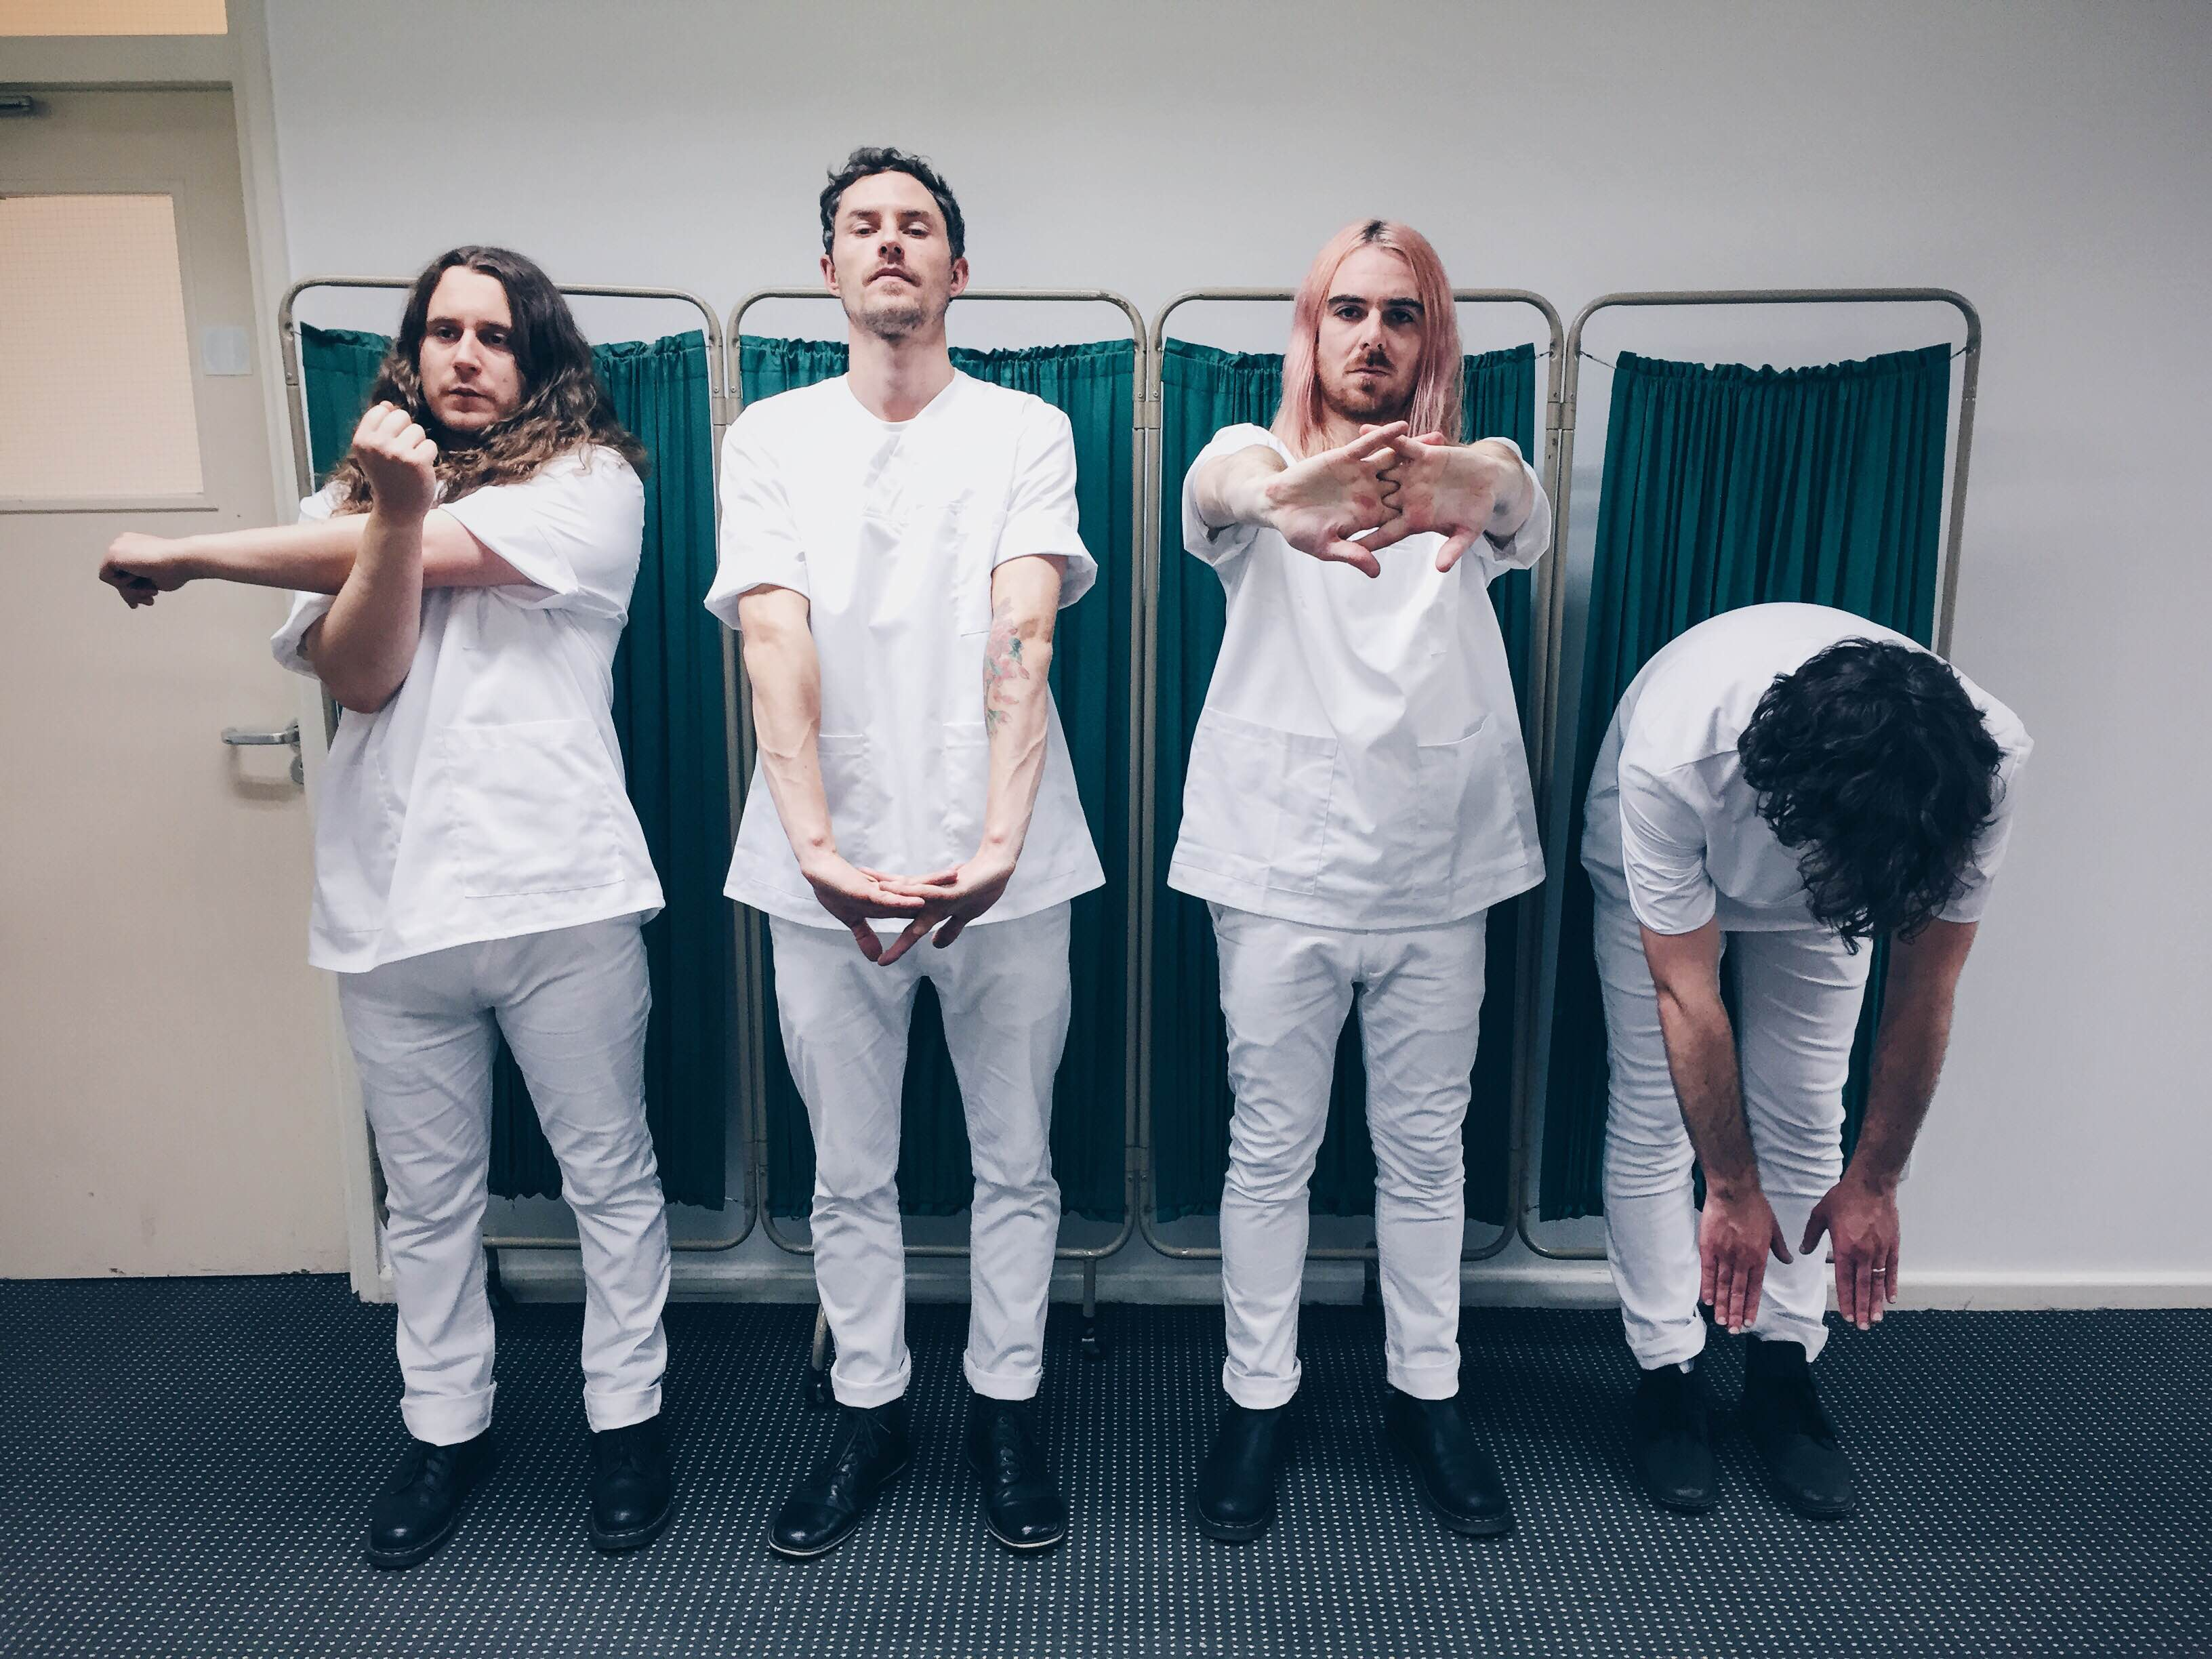 New Video From Pulled Apart By Horses